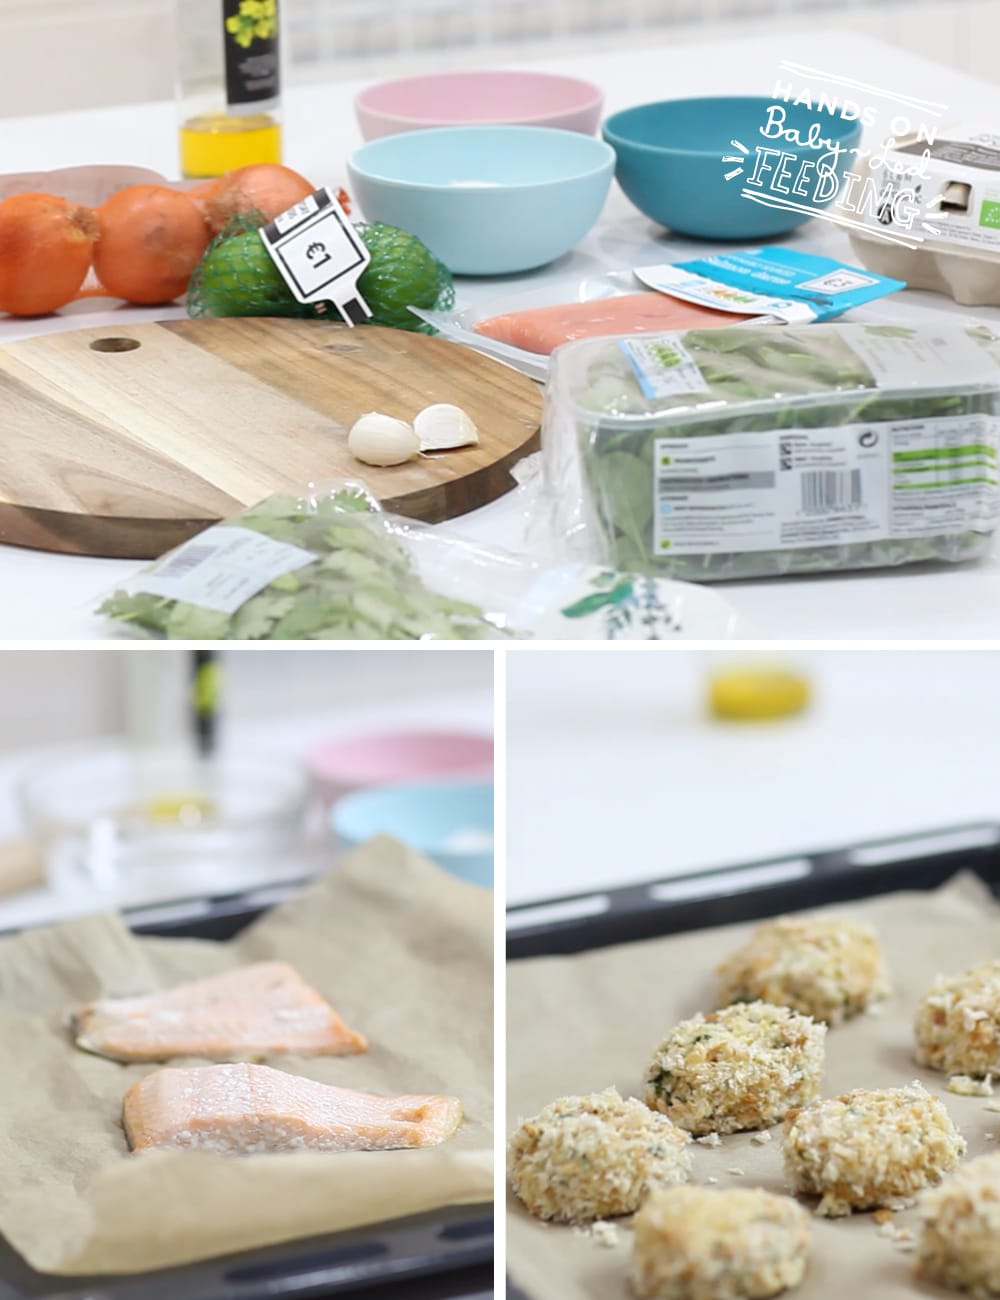 Baby Led Feeding Salmon Nuggets for baby led weaning Recipe image Dunnes Stores Everyday Savers image